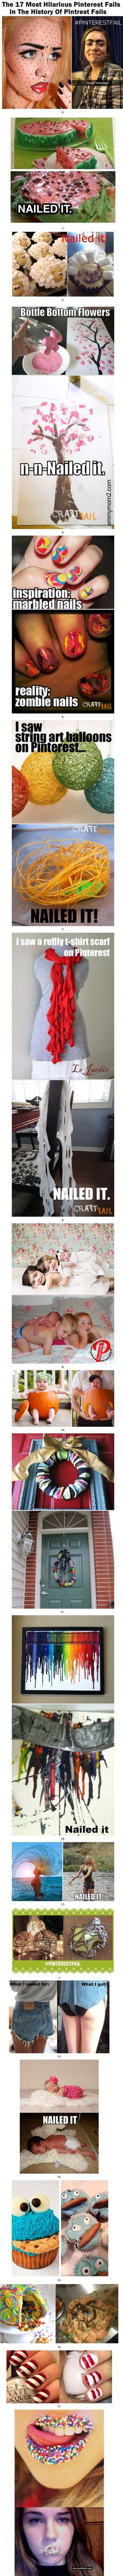 Ideas Funny Fails Nailed It Expectation Vs Reality Laughing For 2019 Funny Baby Pictures, Epic Fail Pictures, Funny Picture Quotes, Funny Text Fails, Funny Texts, Funny Pranks, Funny Jokes, Memes Humor, Expectation Vs Reality